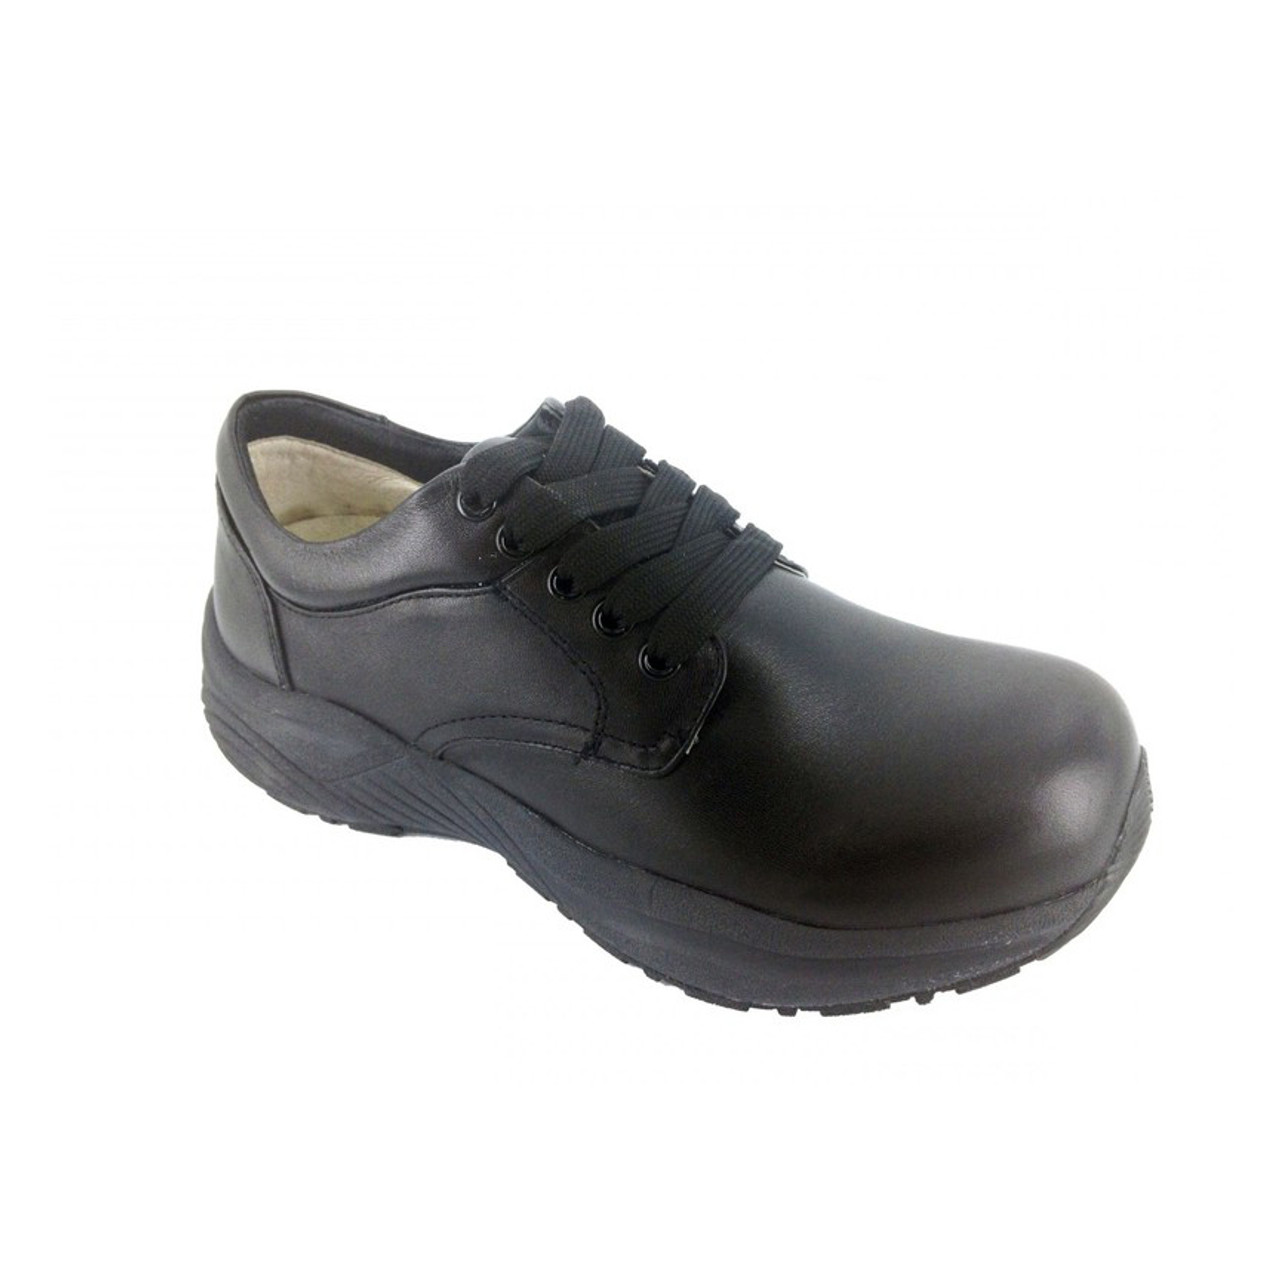 4b34b1f217 Black Lace Up Orthopedic Shoes For Work For Men